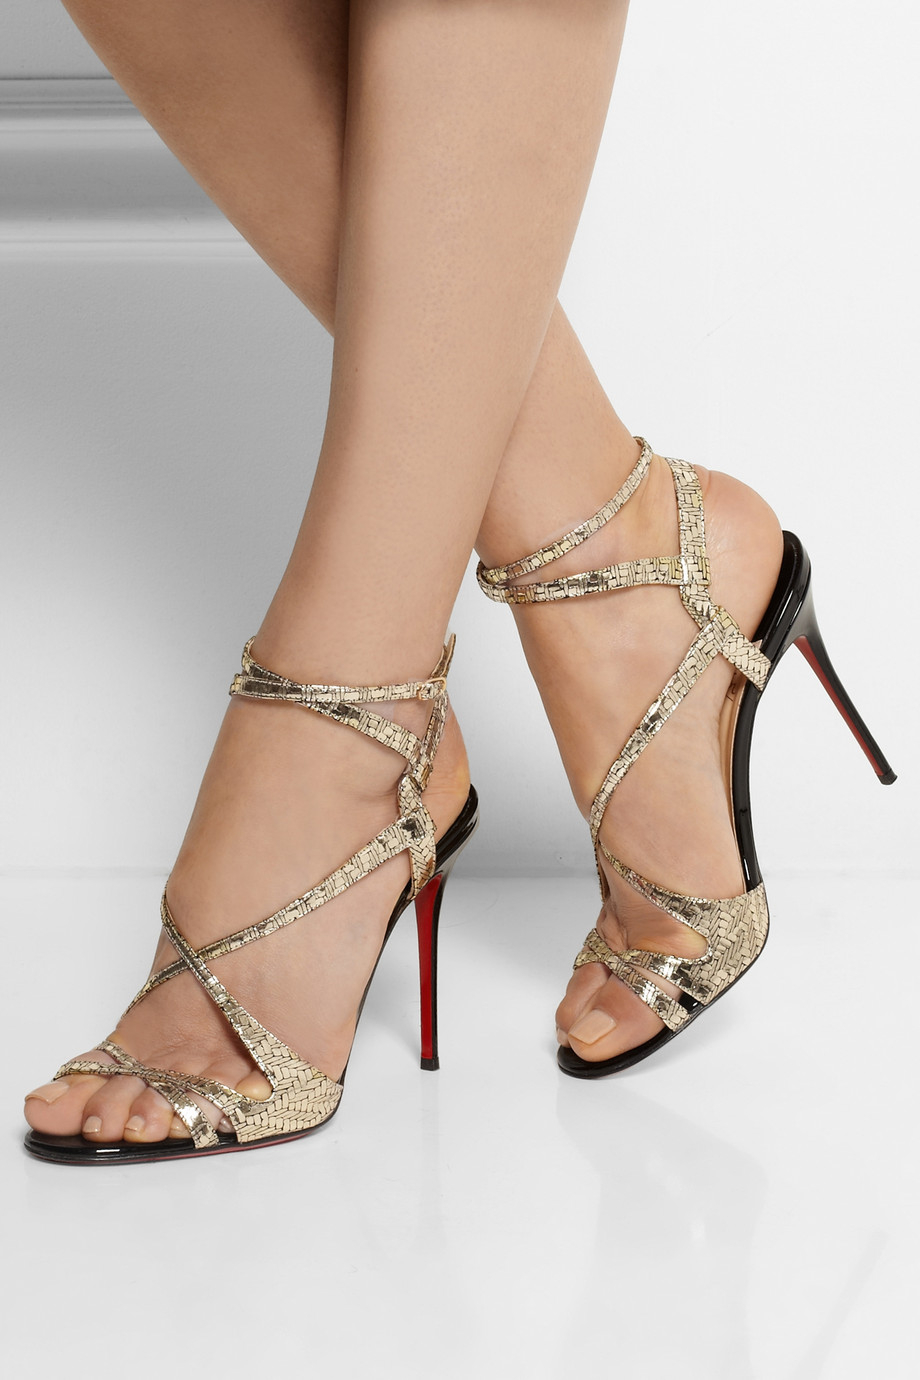 christian louboutin sandals Black suede and gold metallic leather ...